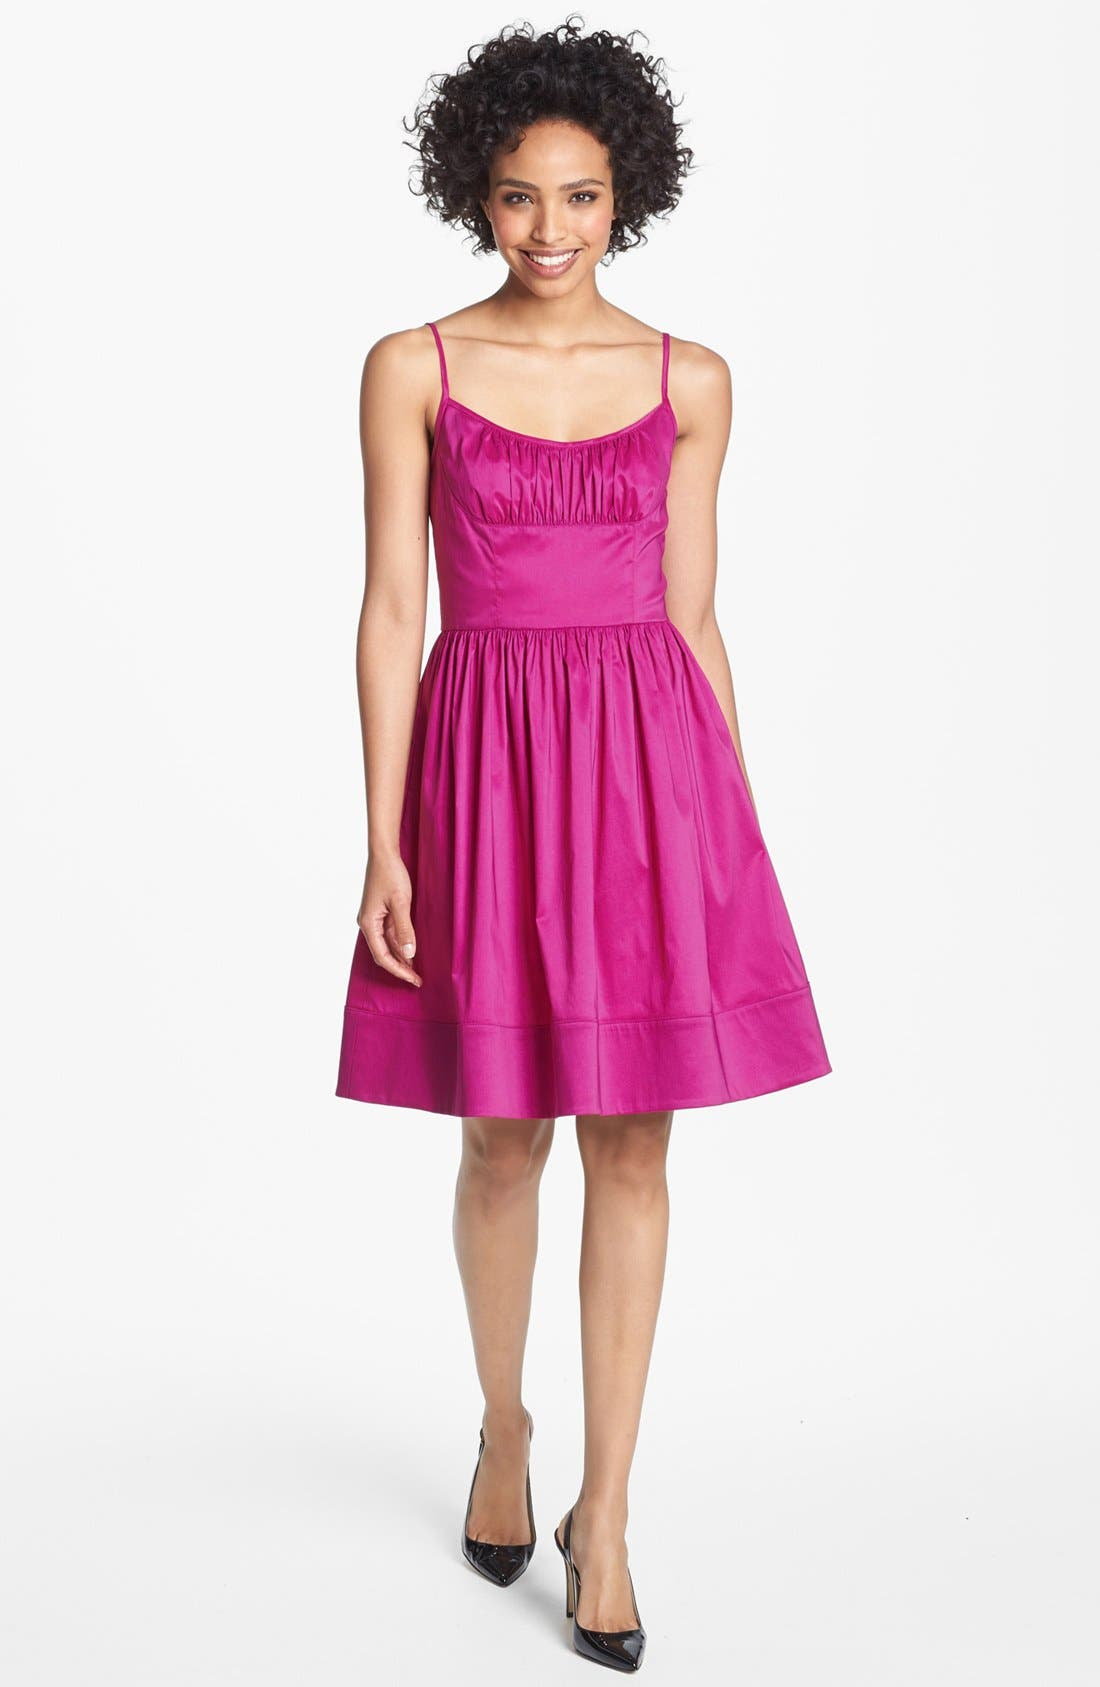 Alternate Image 1 Selected - Maggy London Taffeta Fit & Flare Dress